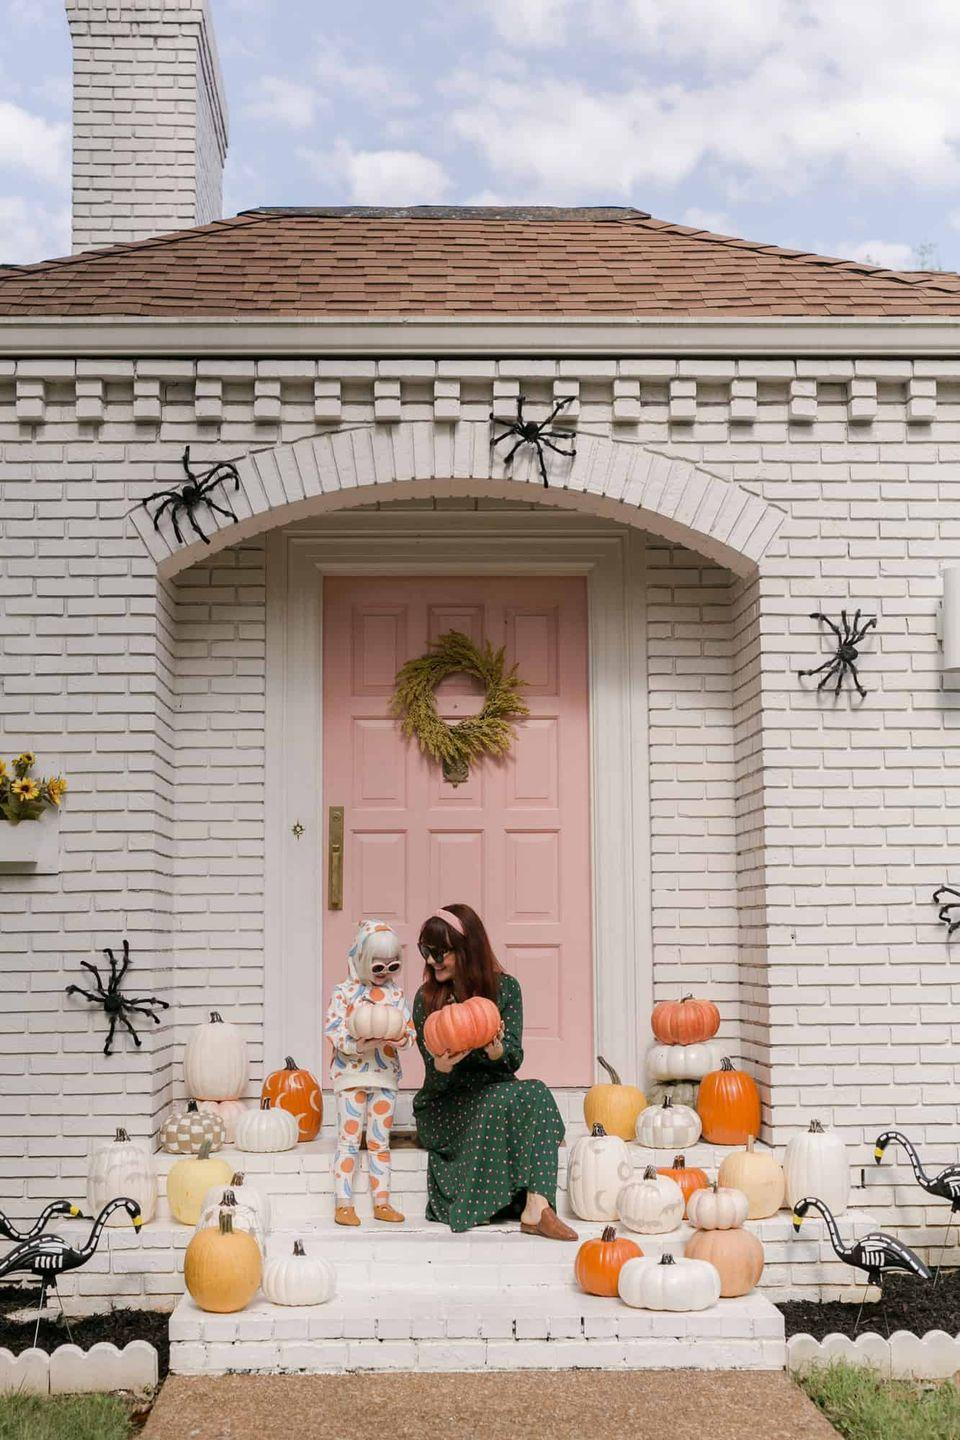 """<p>If the weather stays warm and sunny in your locale, opt for no-carve pumpkins instead of jack-o-lanterns. They're just as eye-catching, but last much longer under more extreme temperatures. </p><p><a class=""""link rapid-noclick-resp"""" href=""""https://abeautifulmess.com/elsies-halloween-home-tour-2/"""" rel=""""nofollow noopener"""" target=""""_blank"""" data-ylk=""""slk:GET THE TUTORIAL"""">GET THE TUTORIAL</a></p>"""